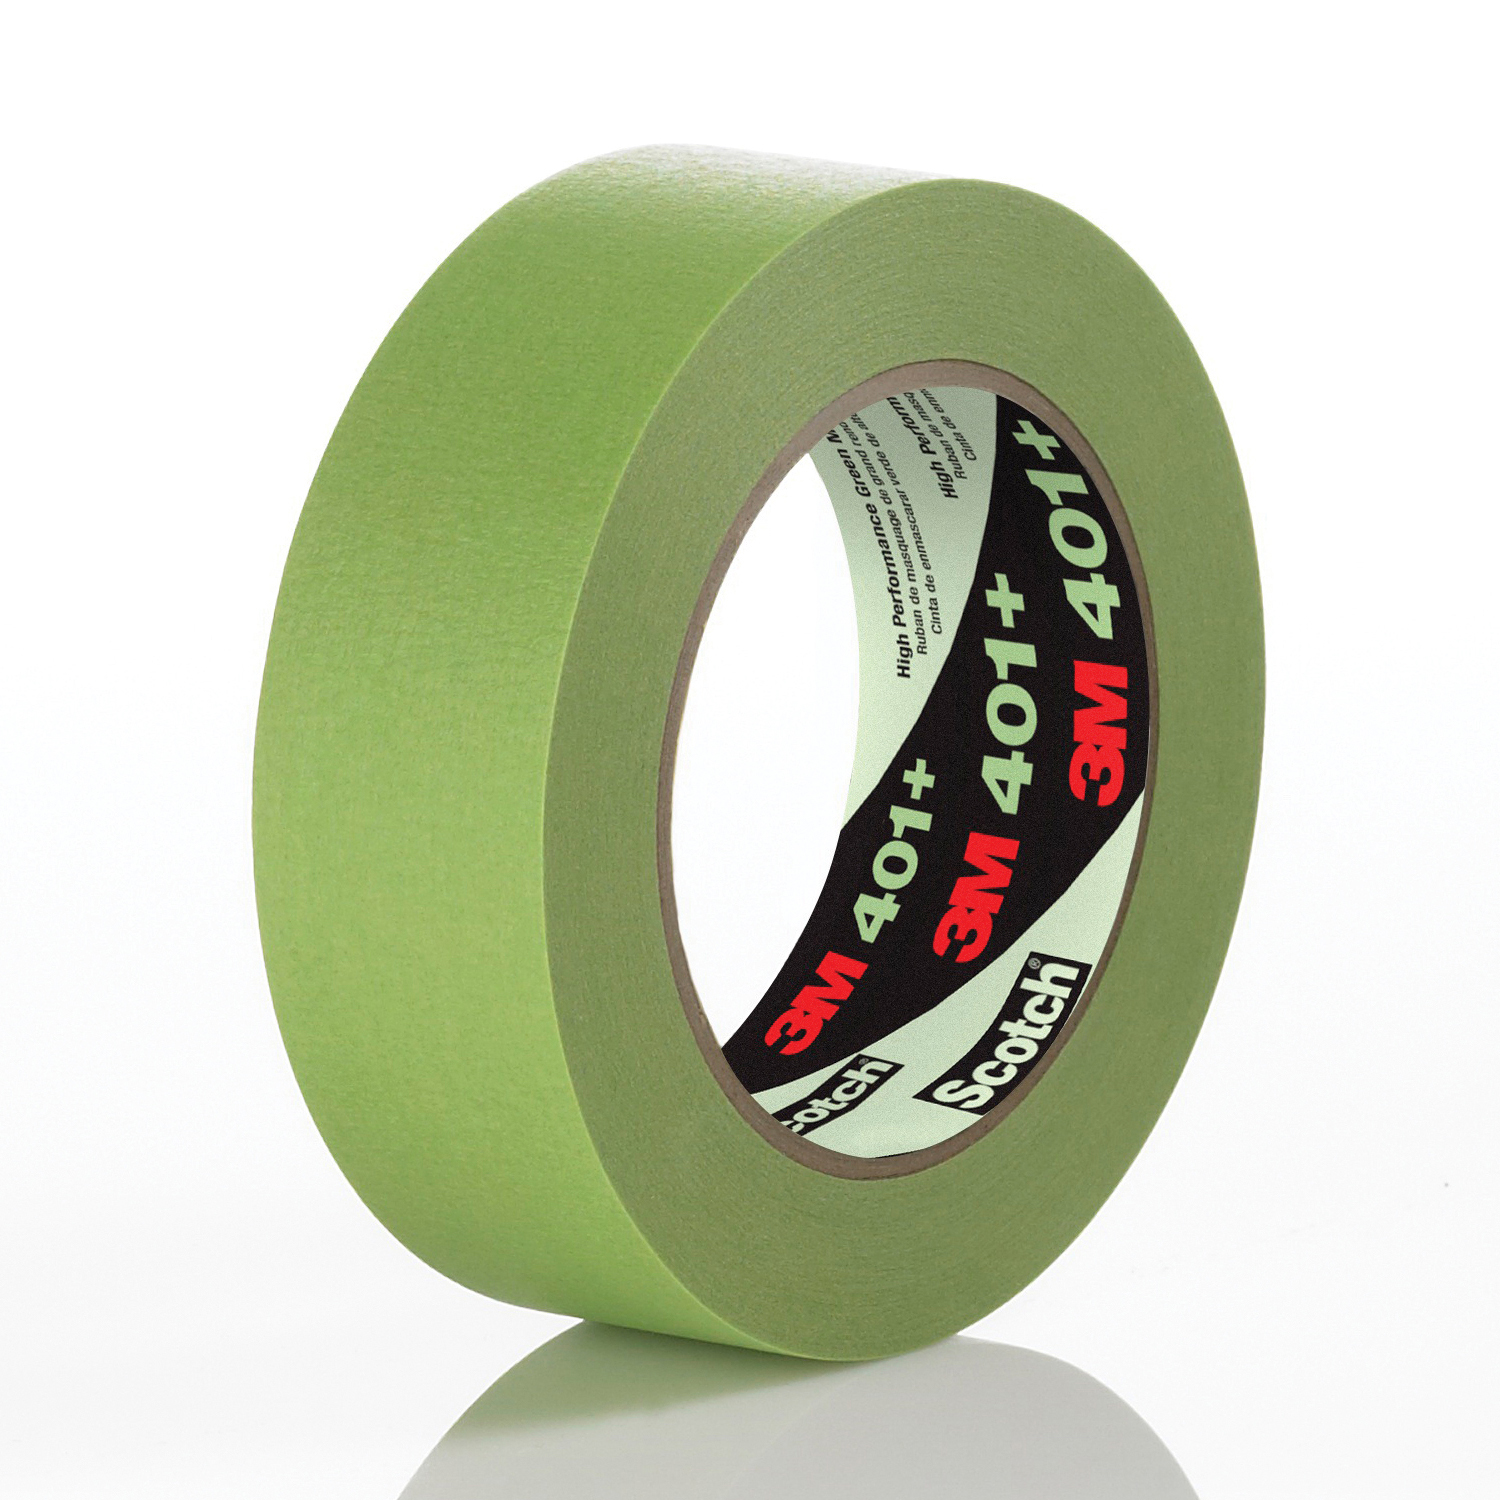 3M™ 051115-64763 High Performance Masking Tape, 55 m L x 48 mm W, 6.7 mil THK, Natural/Synthetic Rubber Adhesive, Crepe Paper Backing